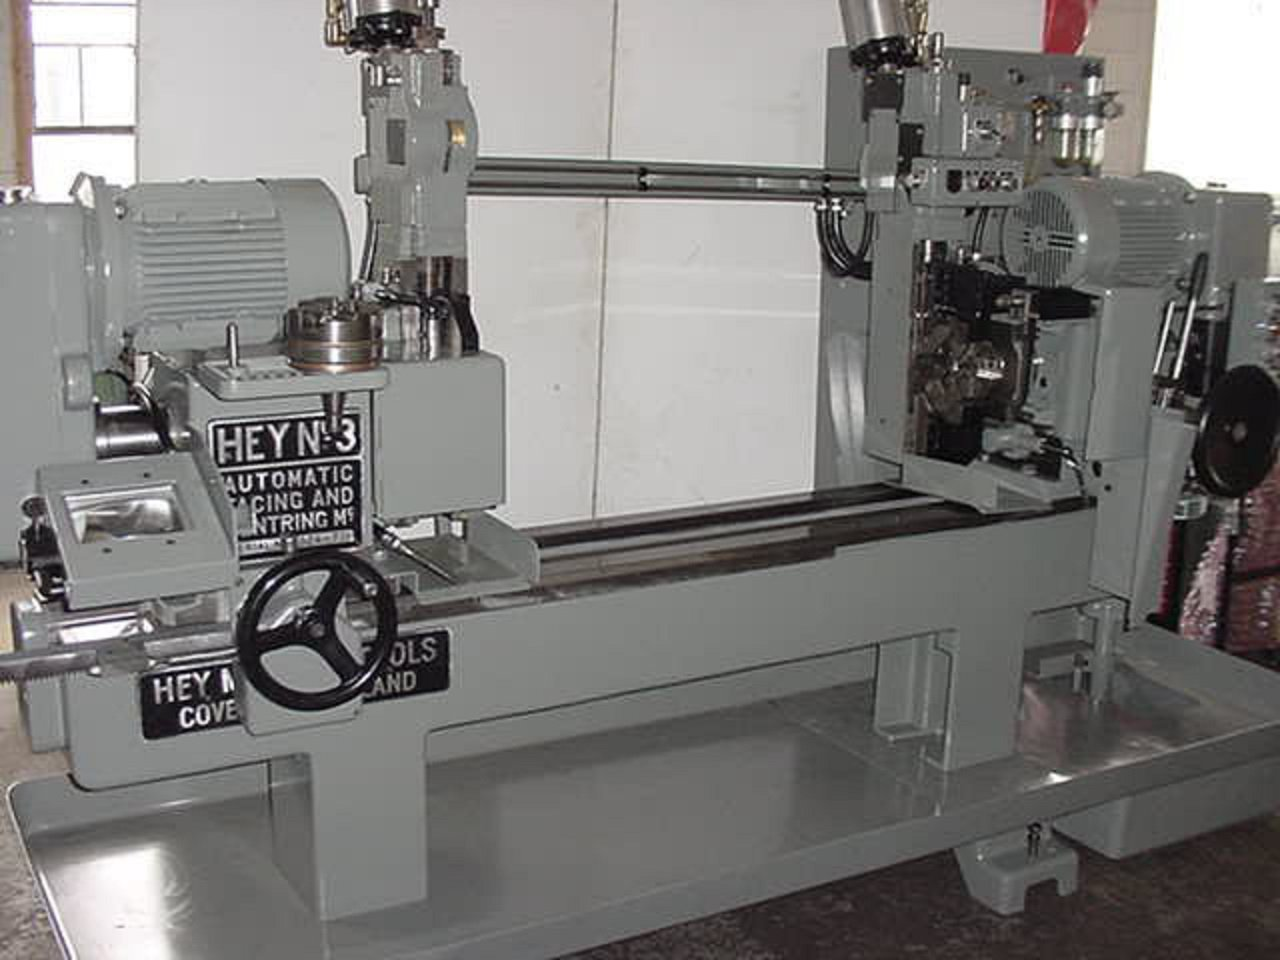 Hey No.3 Facing and Centering Machine